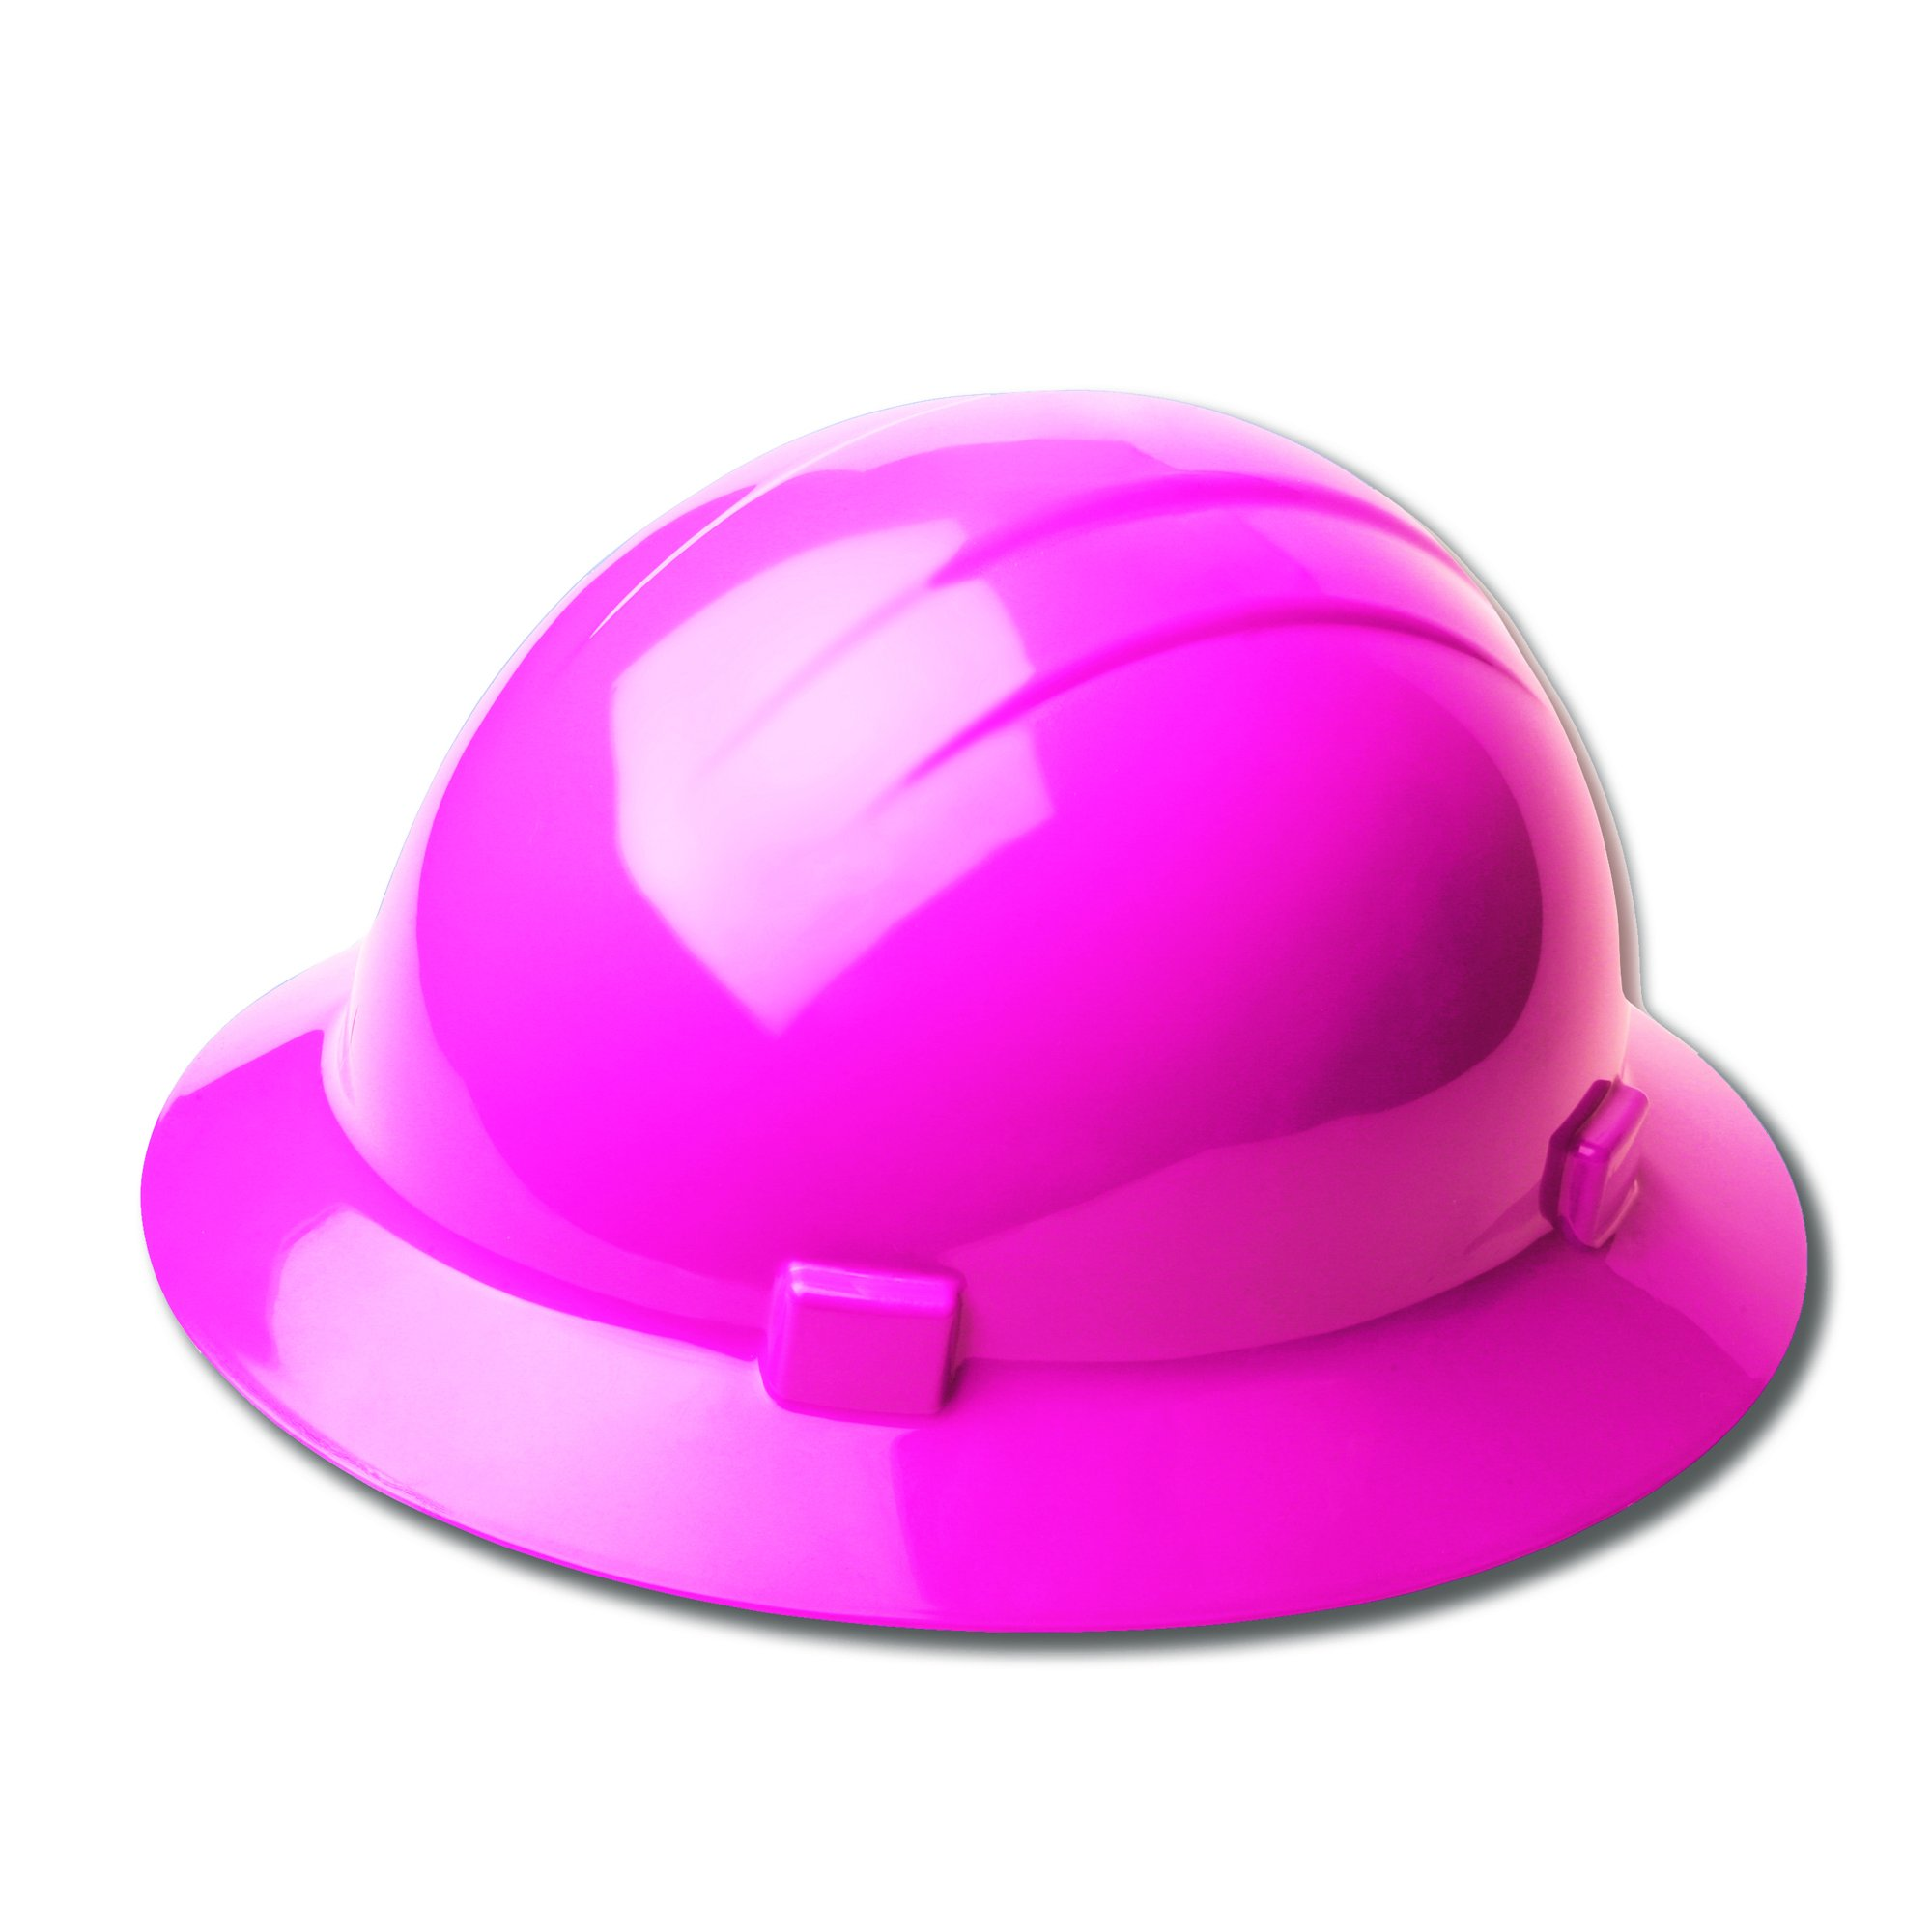 ERB Safety Products 19199 Americana Full Brim Mega Ratchet Hard Hat, Size: 6 1/2-8, Pink